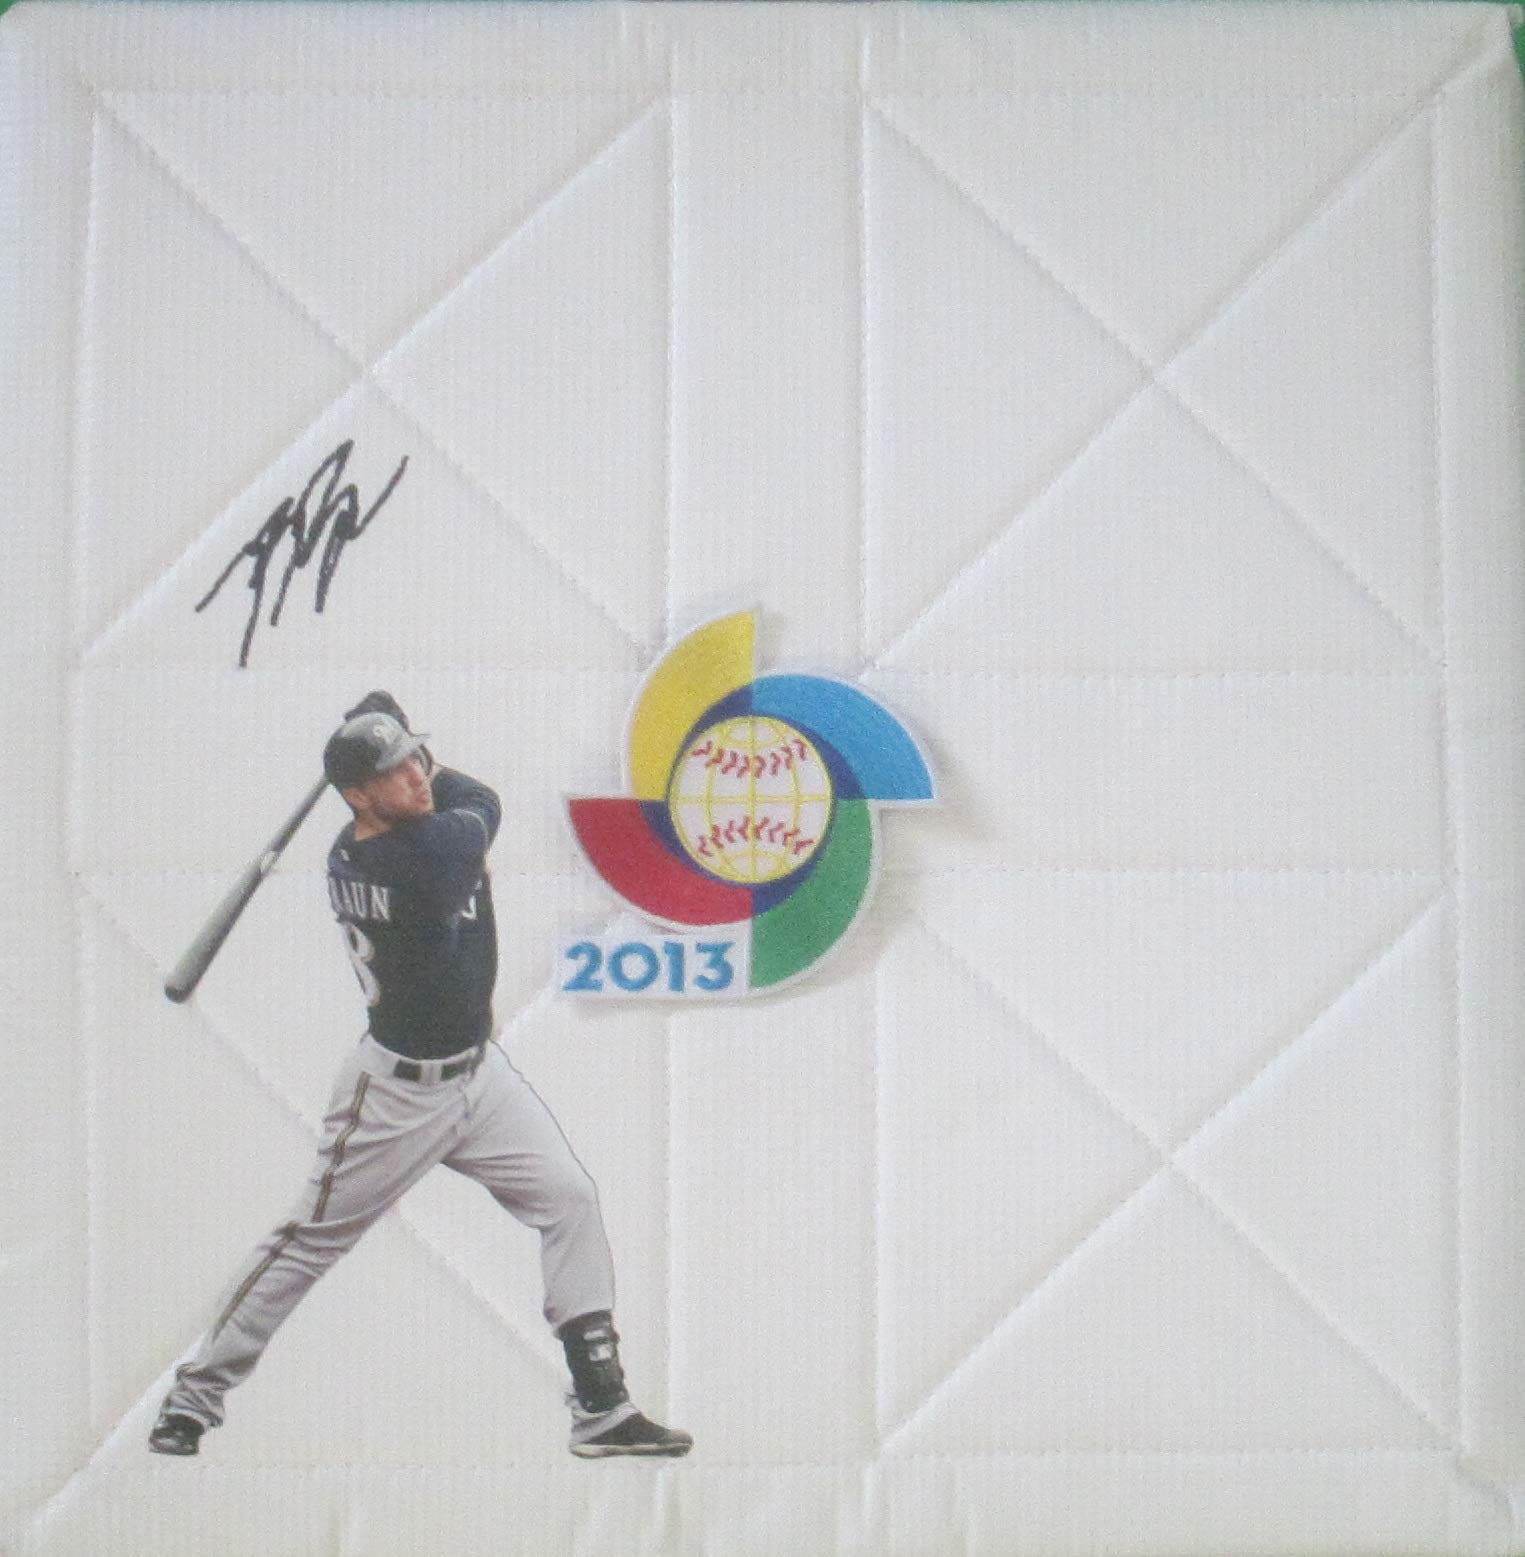 Milwaukee Brewers Ryan Braun Autographed Hand Signed 2013 World Baseball Classic Logo Photo Full Size Base with Proof Photo of Signing, Team USA, COA